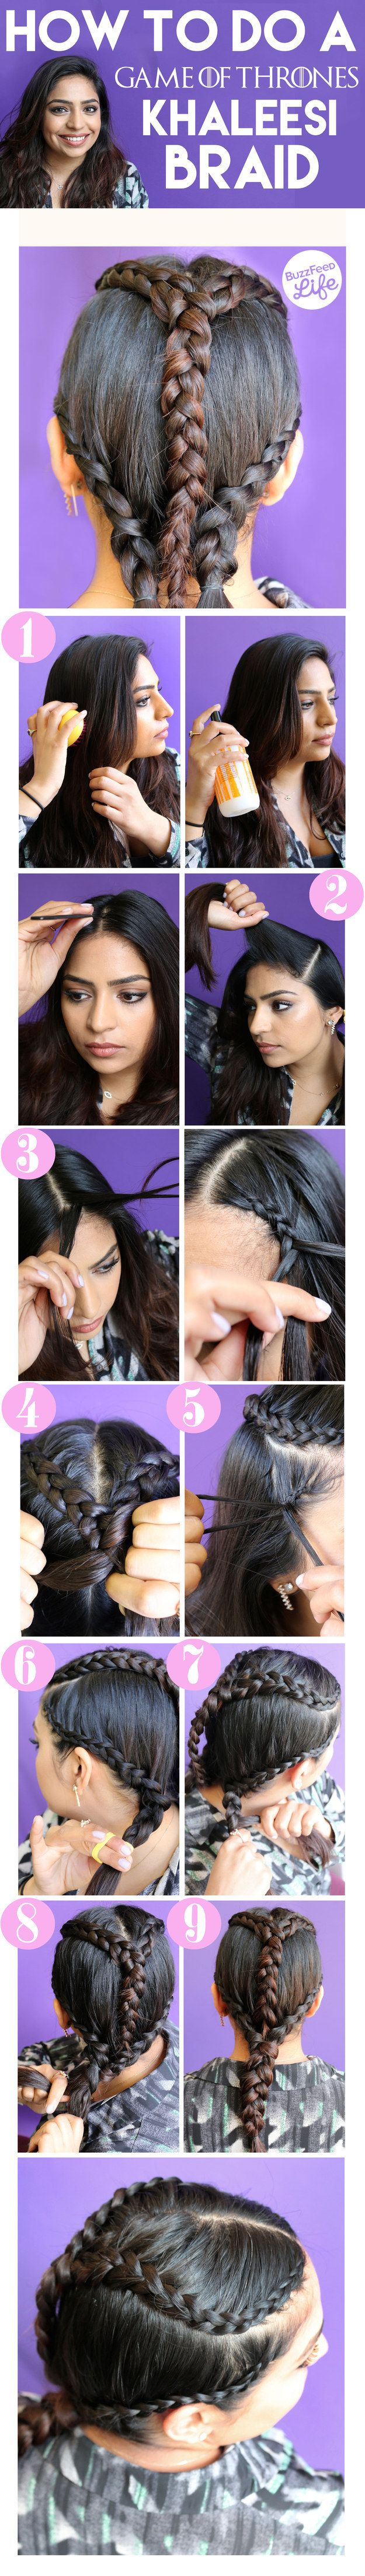 The Easy Peasy Khaleesi: | 3 Game Of Thrones Hair Tutorials You Can Do At Home